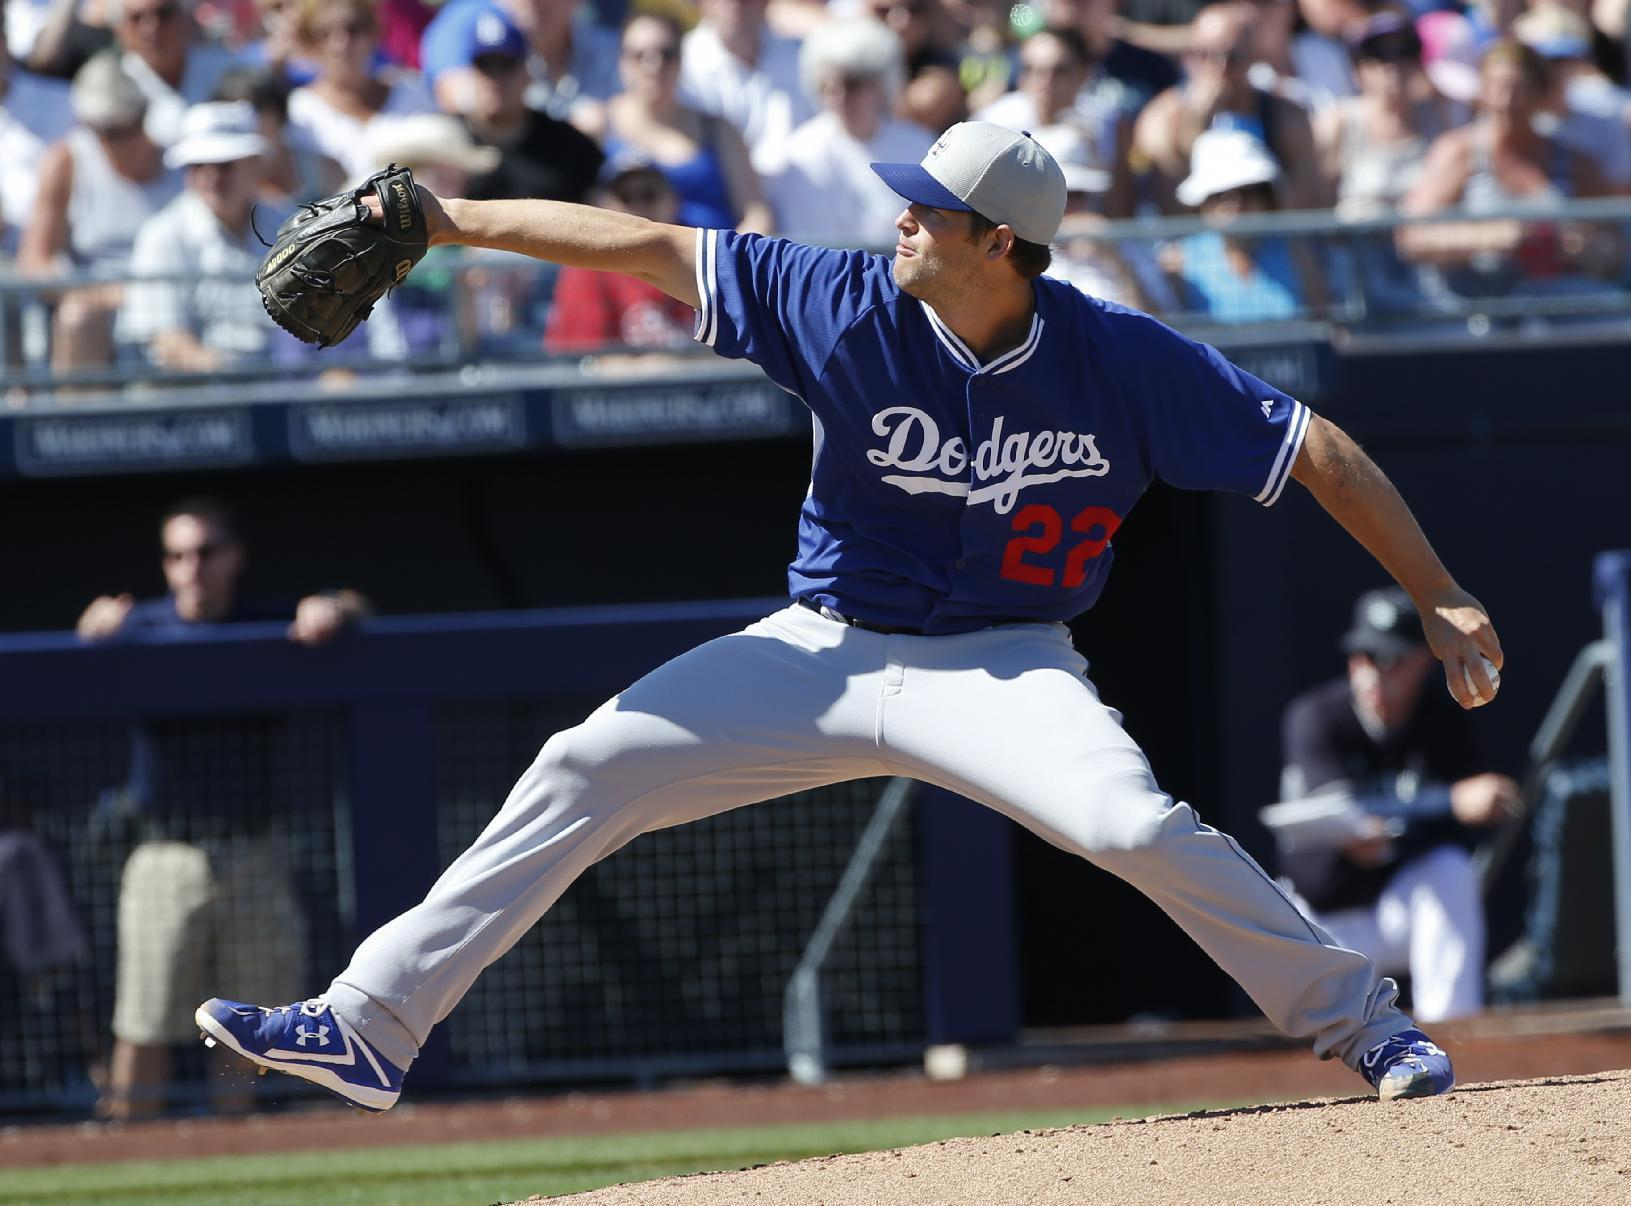 Kershaw whiffs 8 in 1st outing since taking liner off jaw